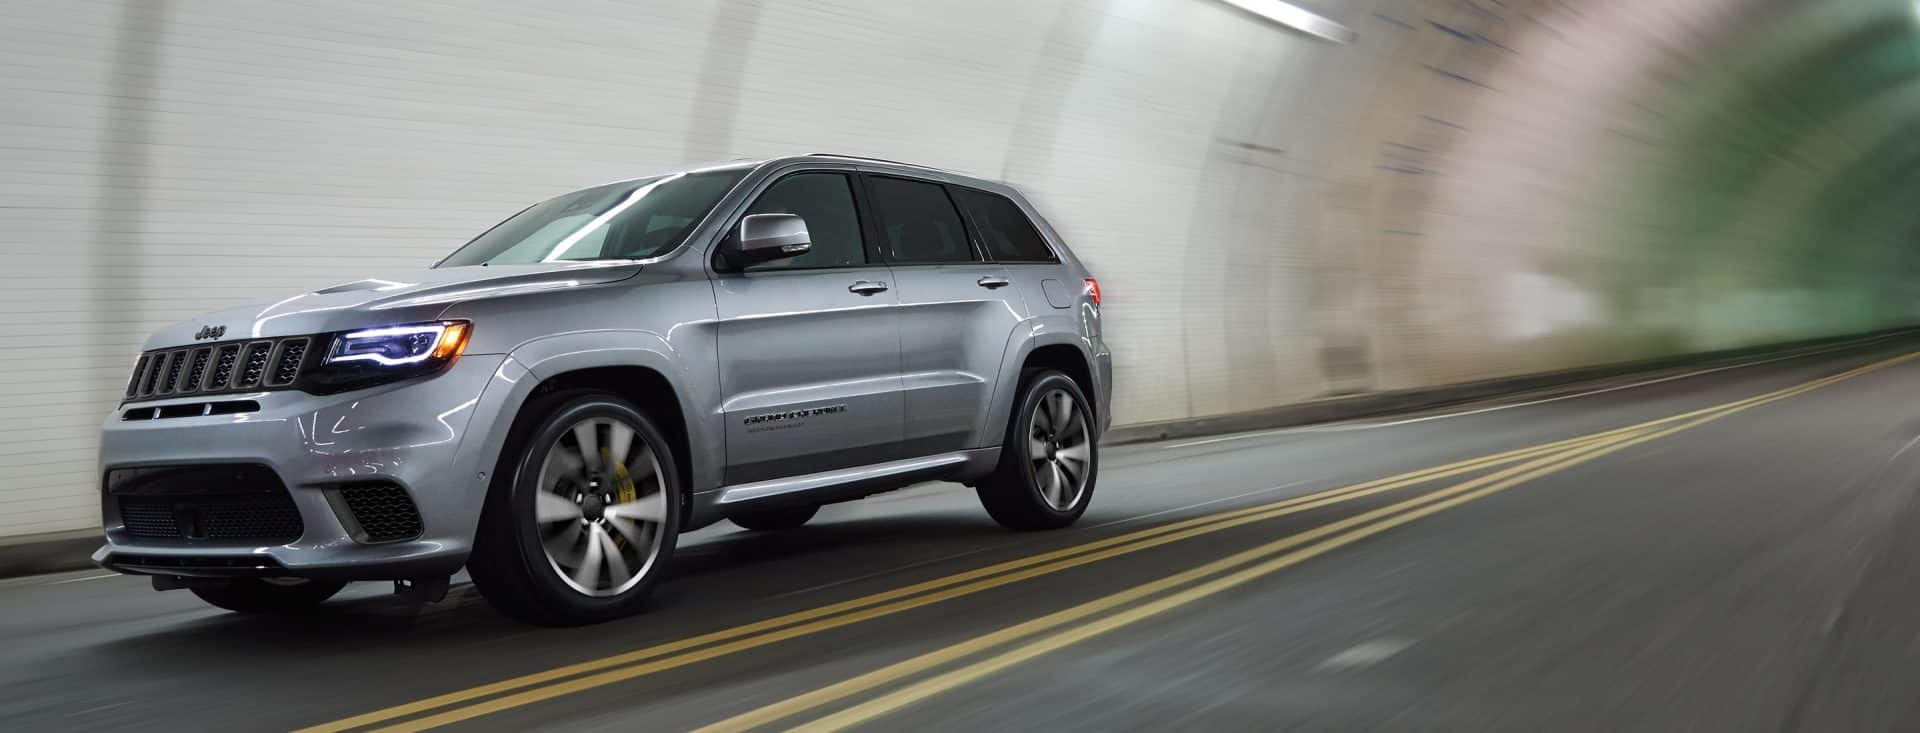 2018 Jeep Grand Cherokee Performance